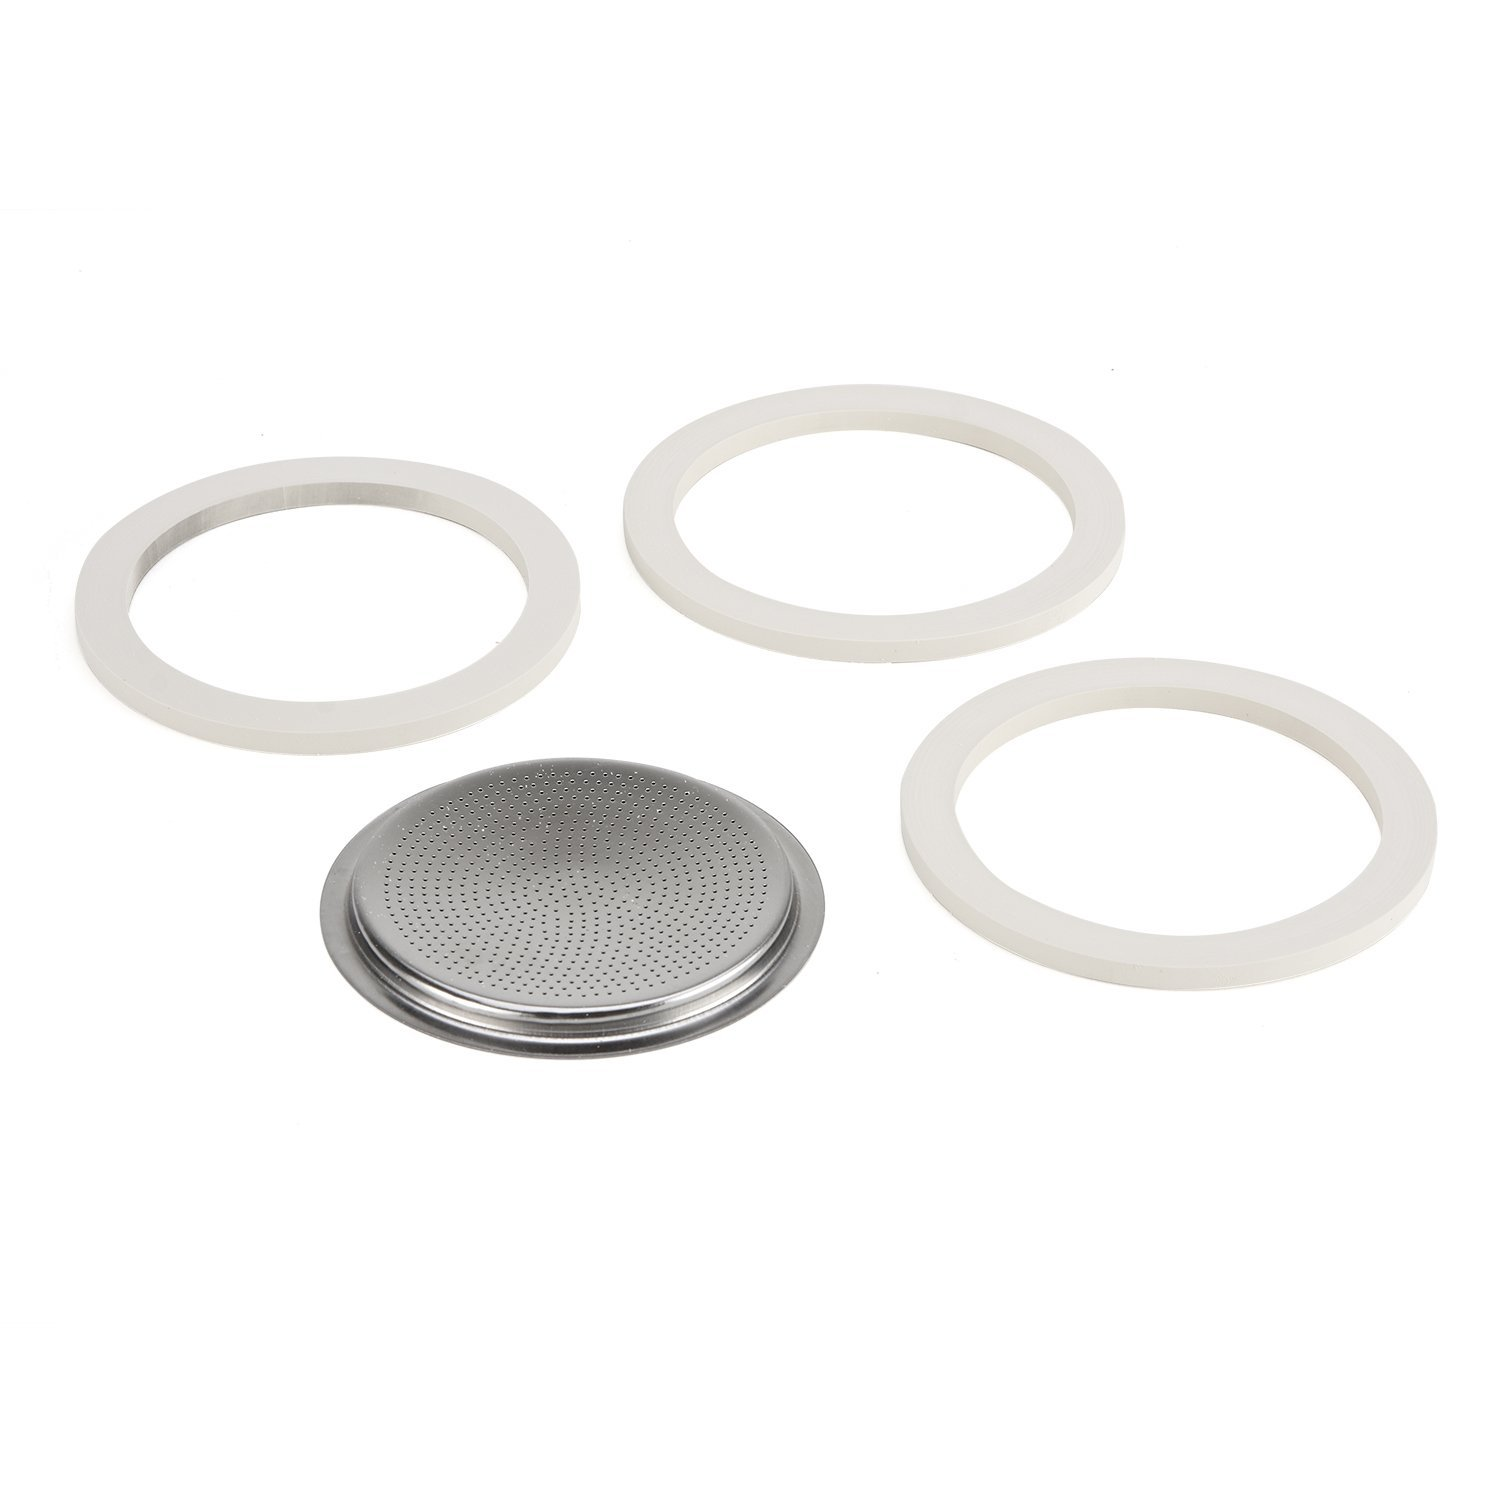 Italian Coffee Maker Seals : Bialetti Gasket and Filter Set for Stainless Steel Espresso Makers - 10 Cup eBay